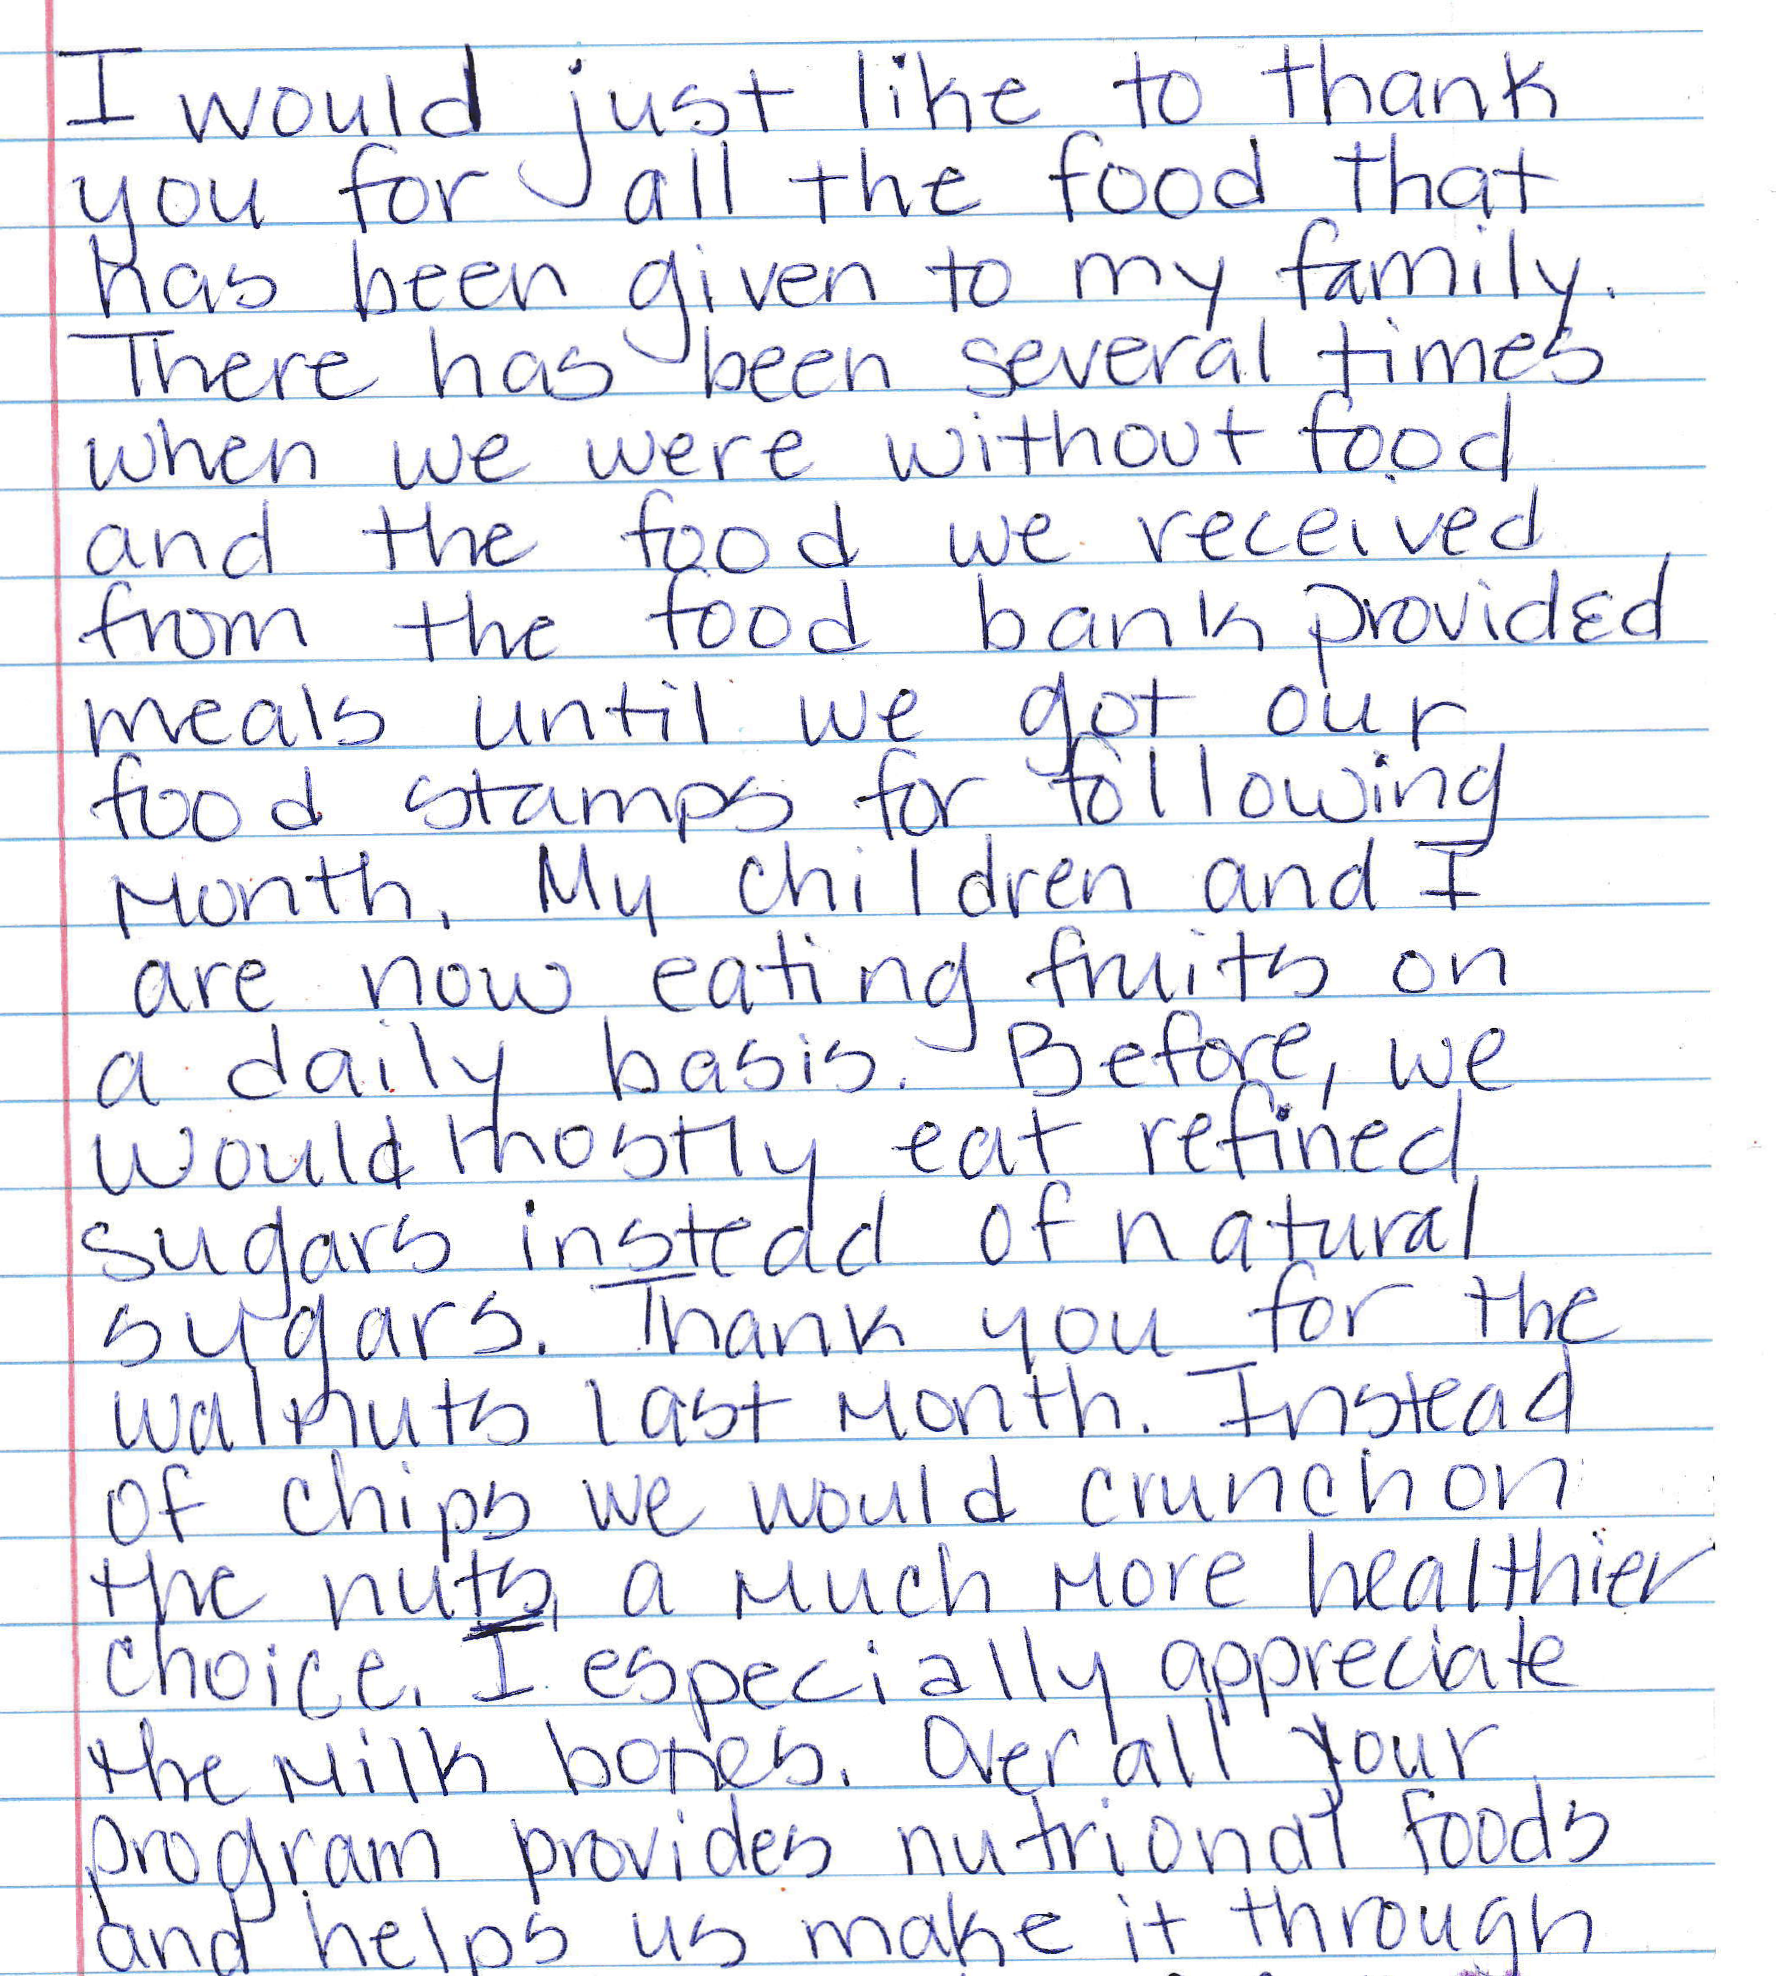 A note from a mother whose child receives food from the Food Bank.